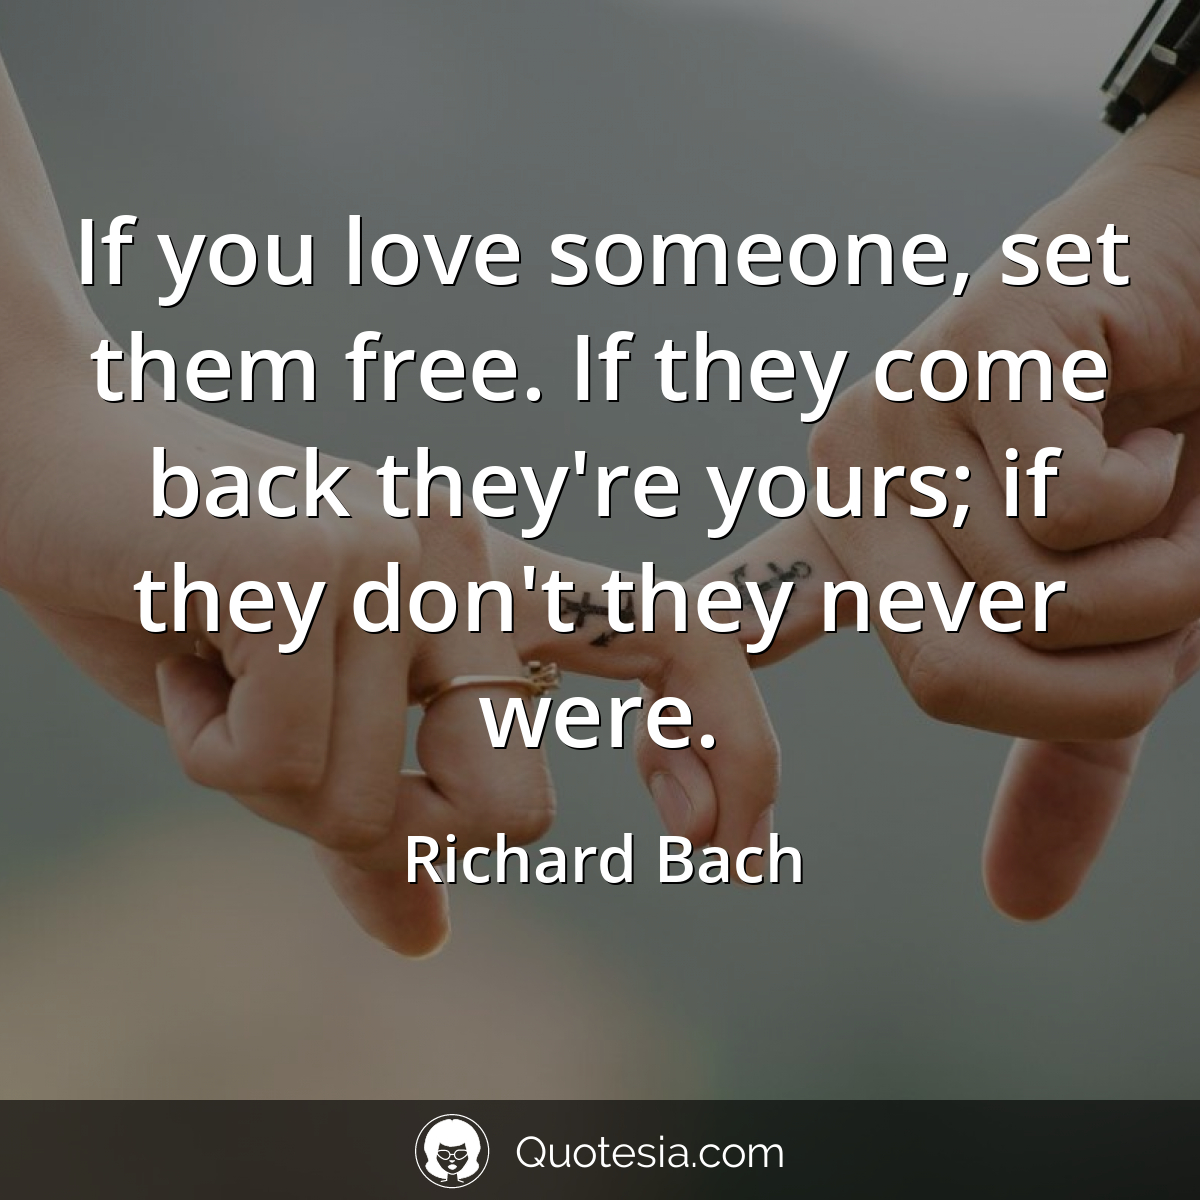 """If you love someone, set them free. If they come back they're yours; if they don't they never were."" – Richard Bach [1200 x 1200]"